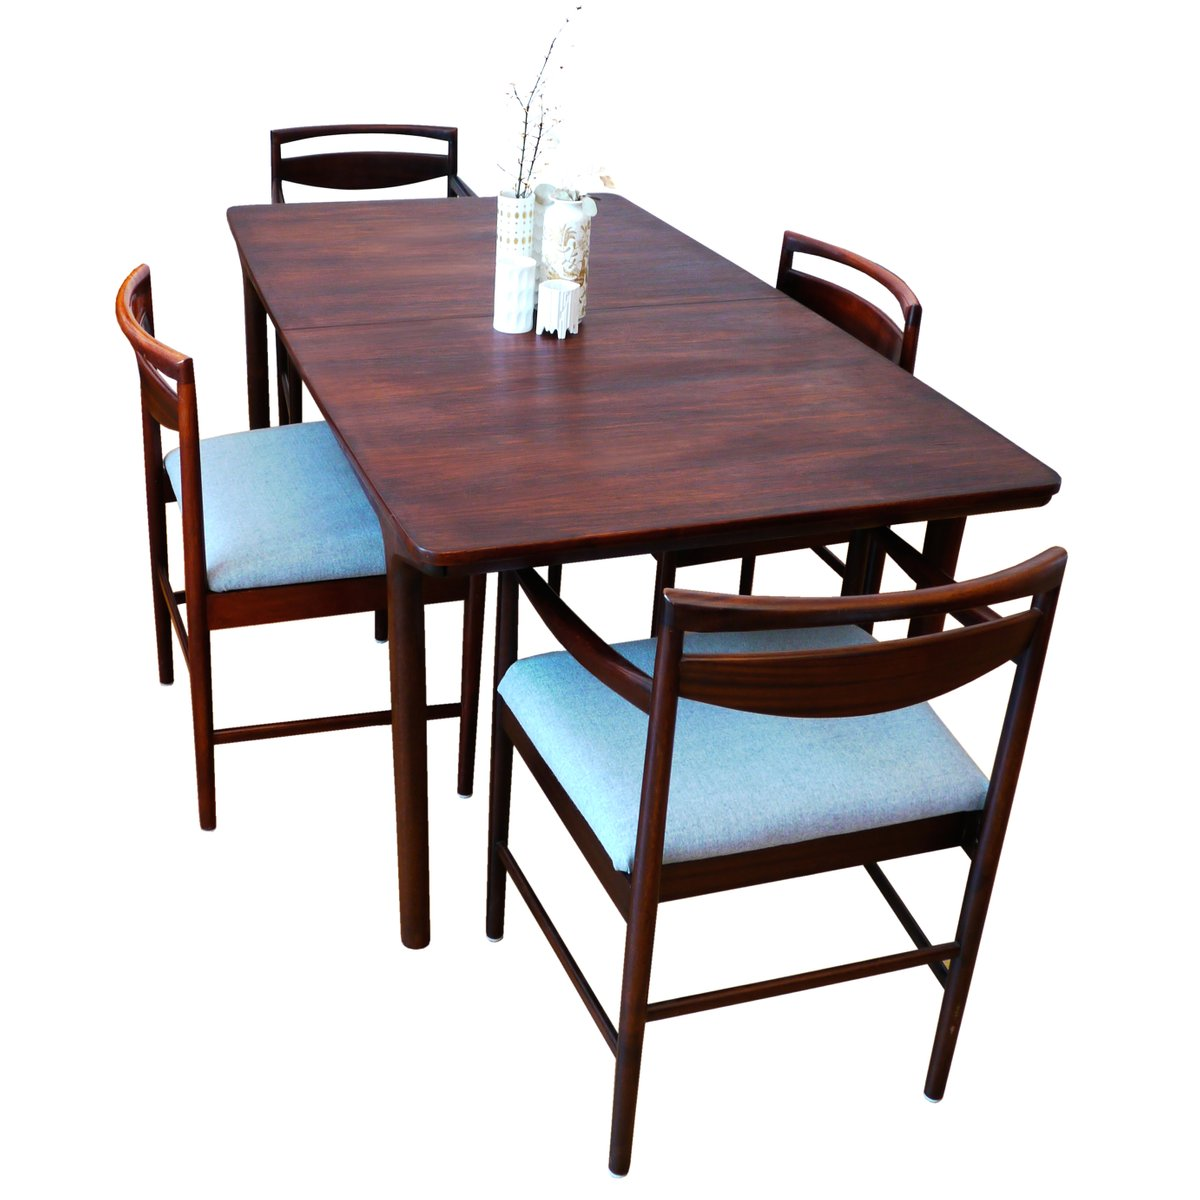 Grande table de salle manger rallonge mid century 12 for Table de salle a manger a rallonge